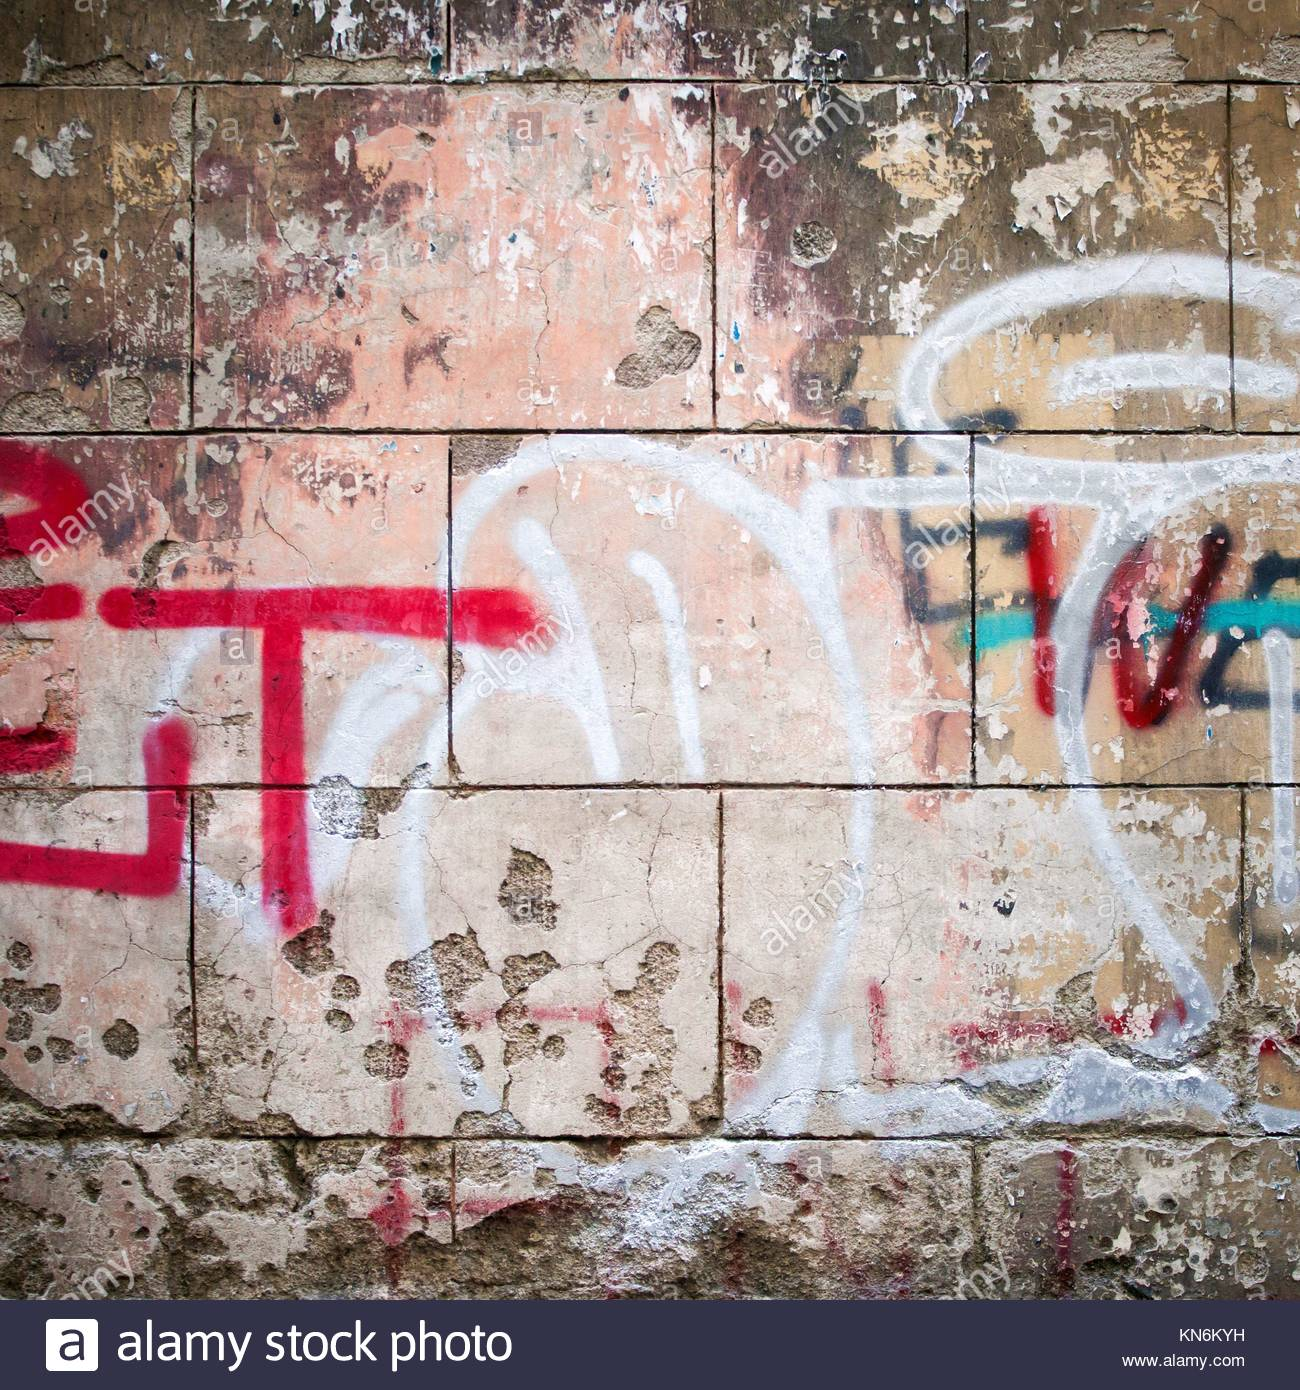 Extreme close up of colourful graffiti on concrete wall stock image